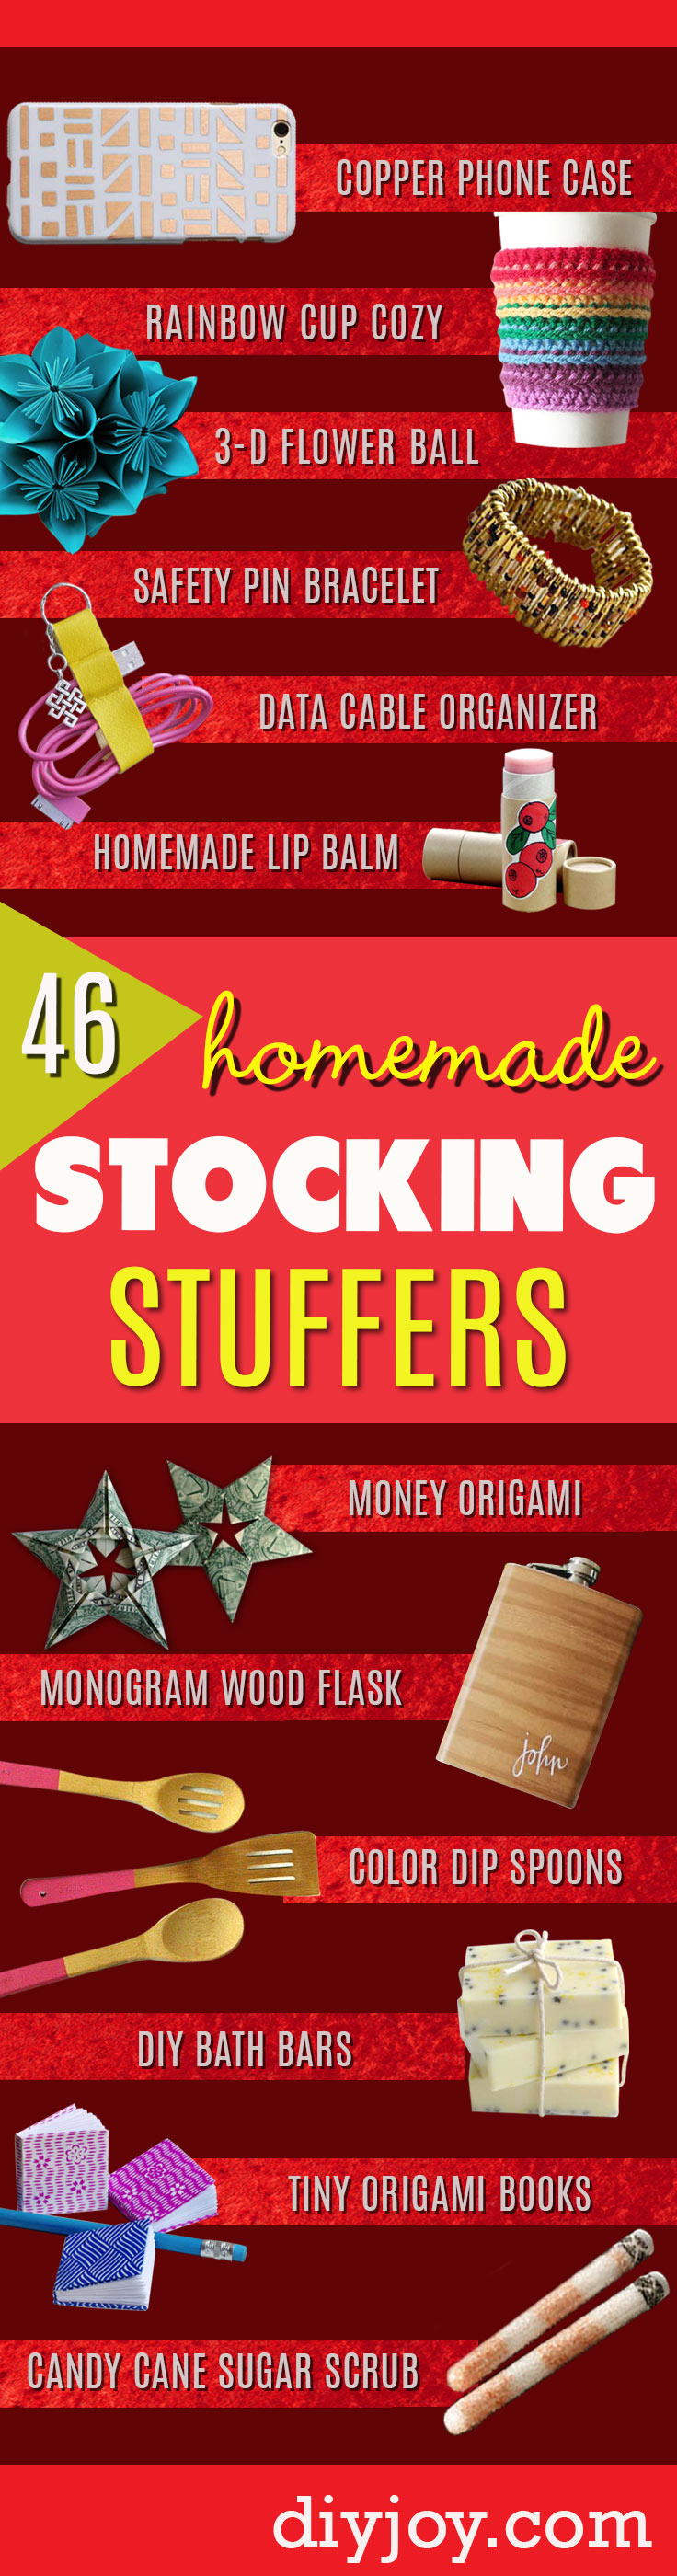 Fun Homemade Gifts for Friends | Cute DIY Stocking Stuffers for Christmas | Easy DIY Crafts Ideas http://diyjoy.com/cute-diy-stocking-stuffer-ideas